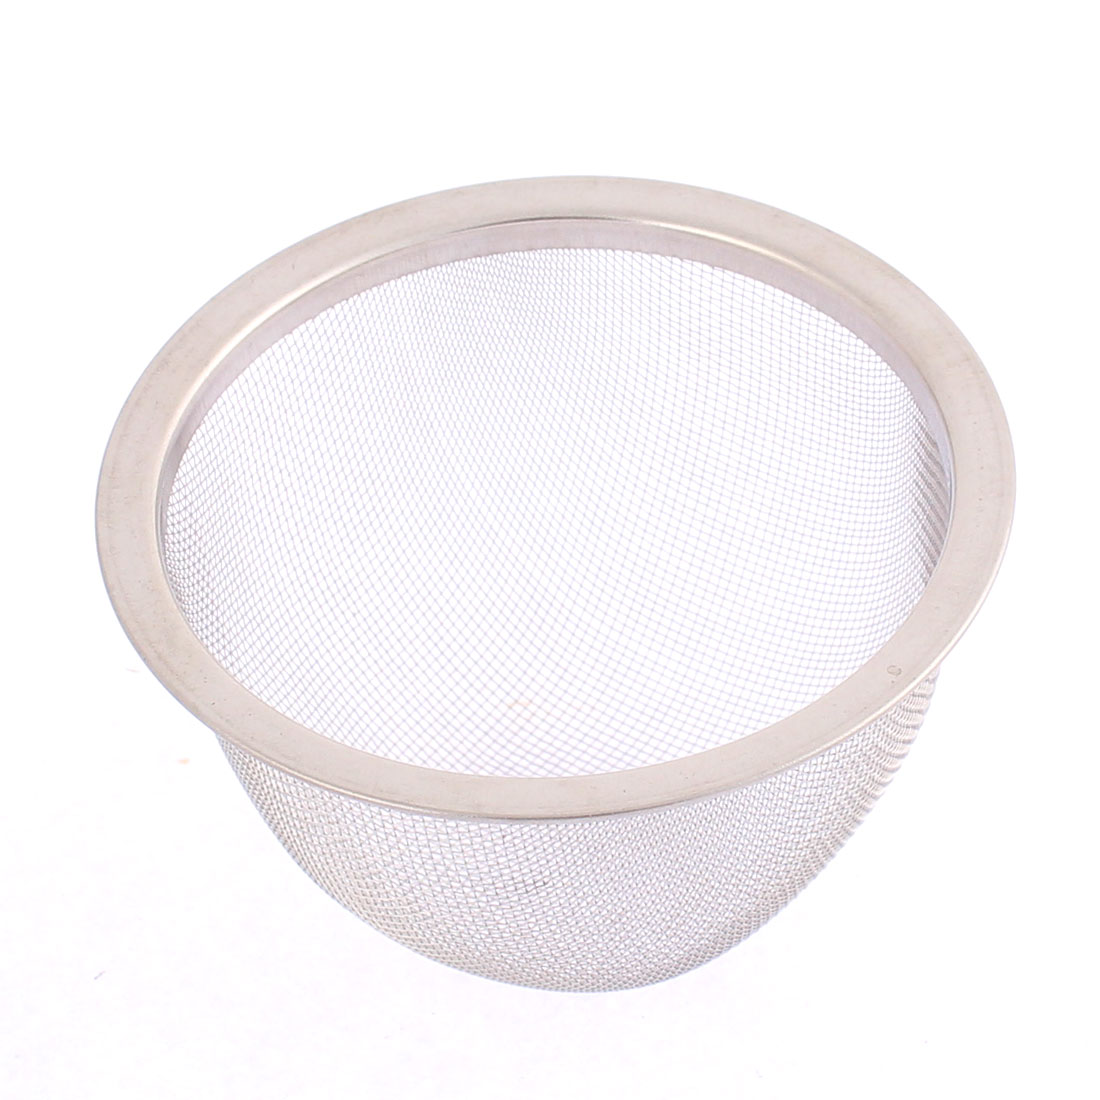 Tea Leaf Herbal Spice Infuser Filter Strainer 80mm x 55mm